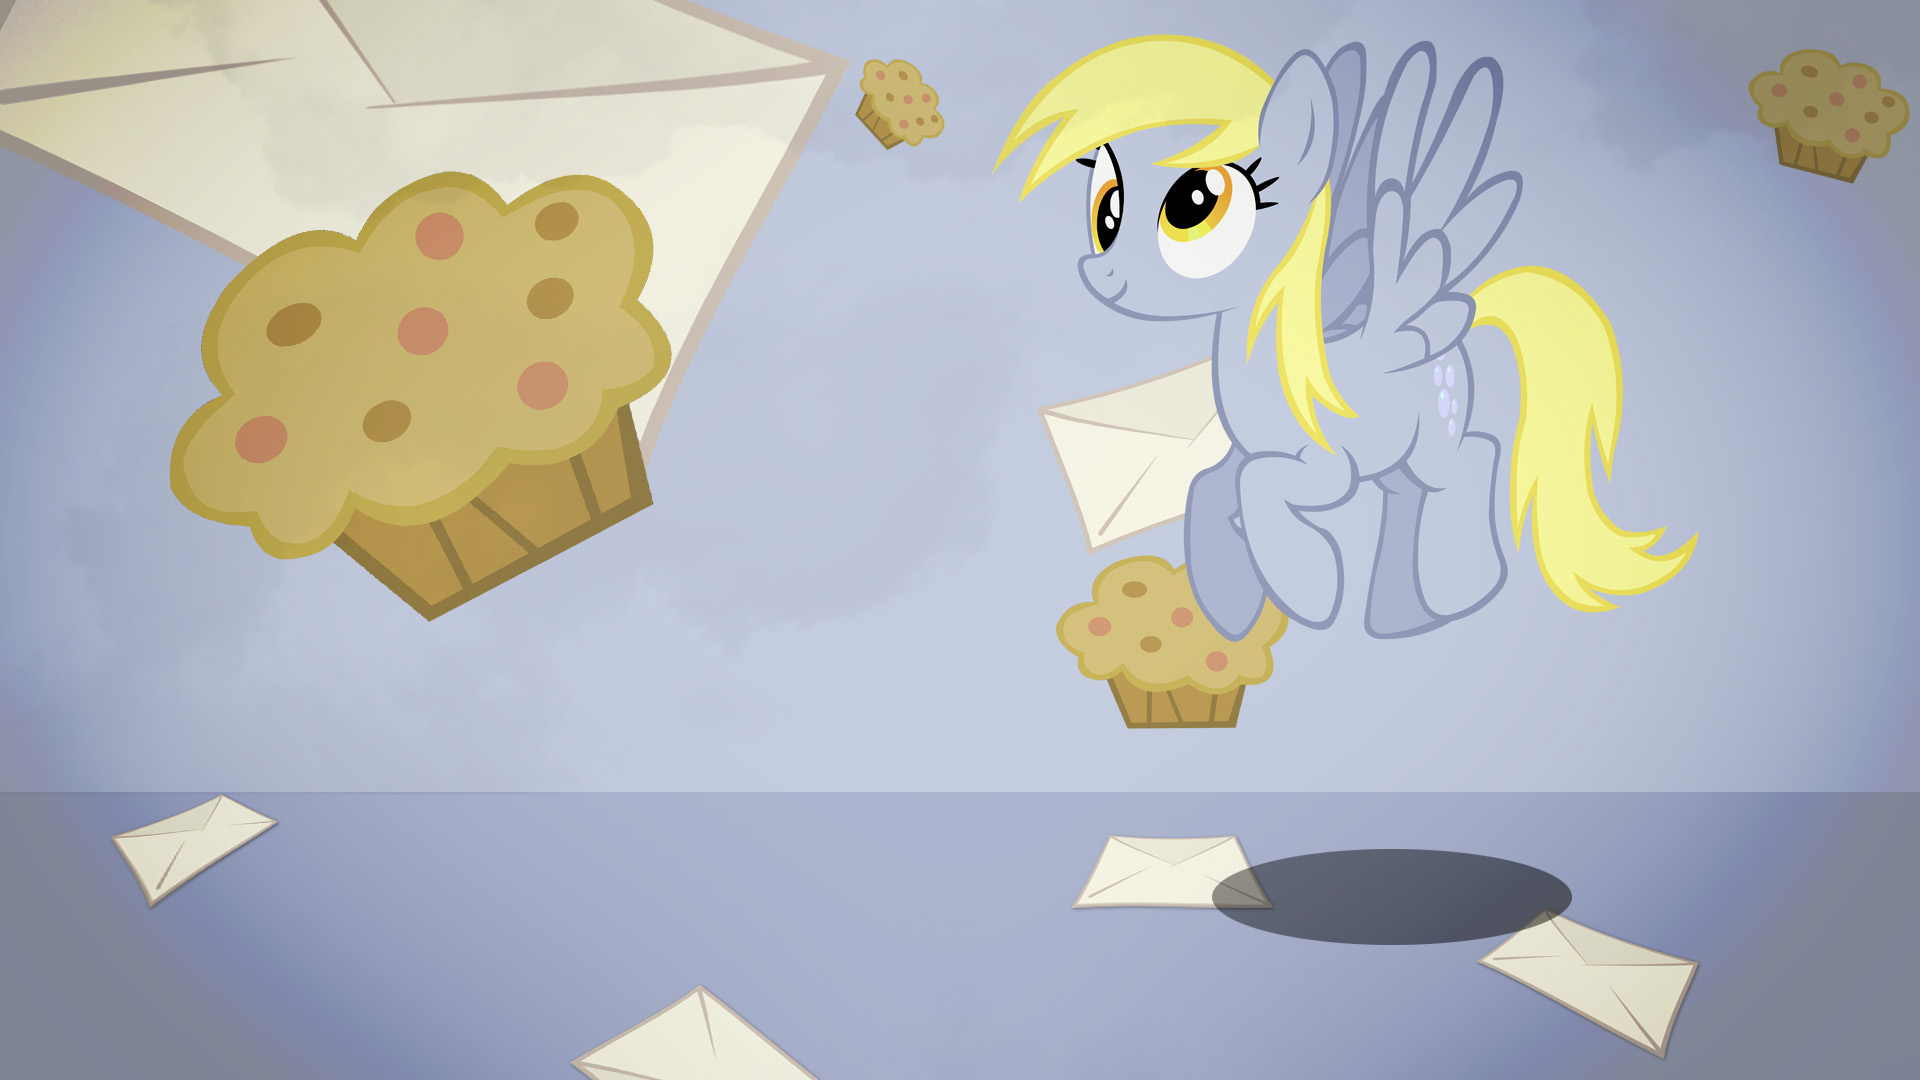 derpy_muffin_mail_wallpaper_minimalistic_by_nidrax-d56kdwx.jpg